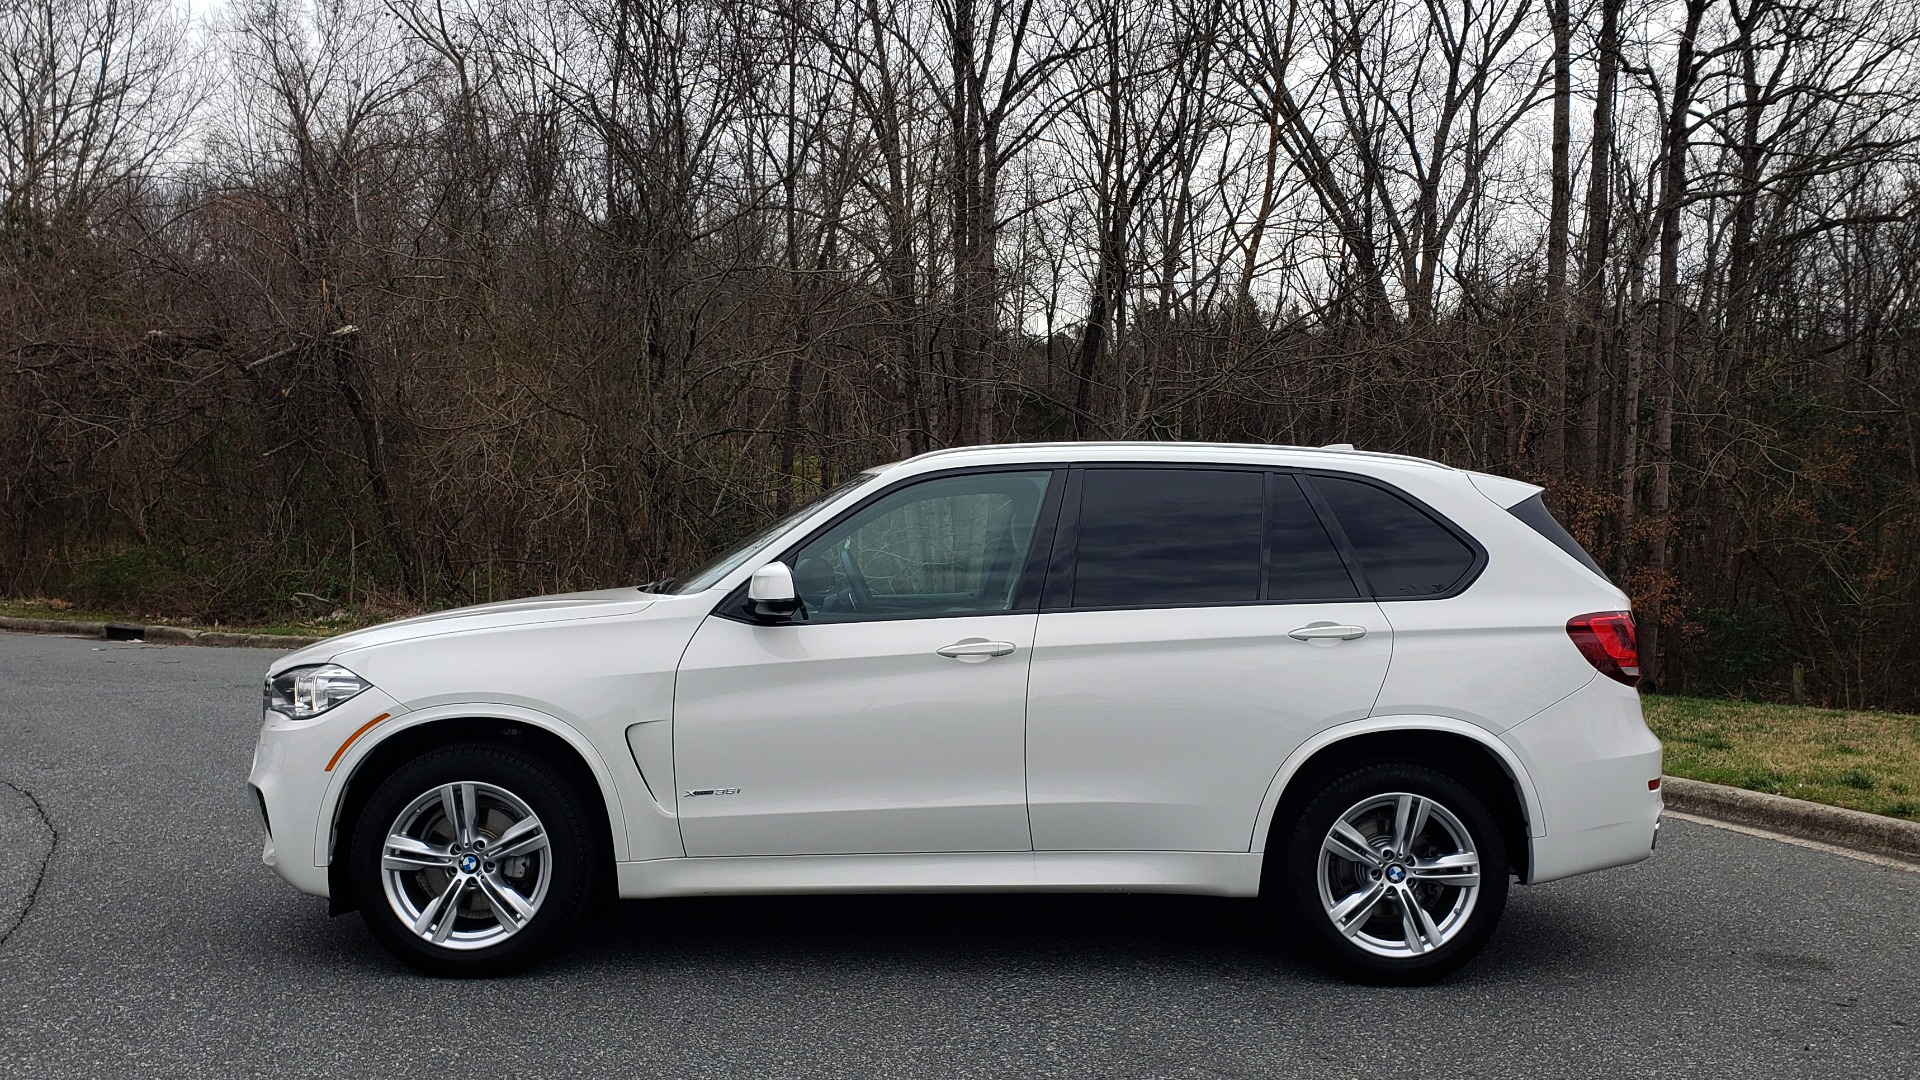 Used 2017 BMW X5 XDRIVE35I M-SPORT / PREM PKG / DRVR ASST PLUS CLD WTHR for sale Sold at Formula Imports in Charlotte NC 28227 2